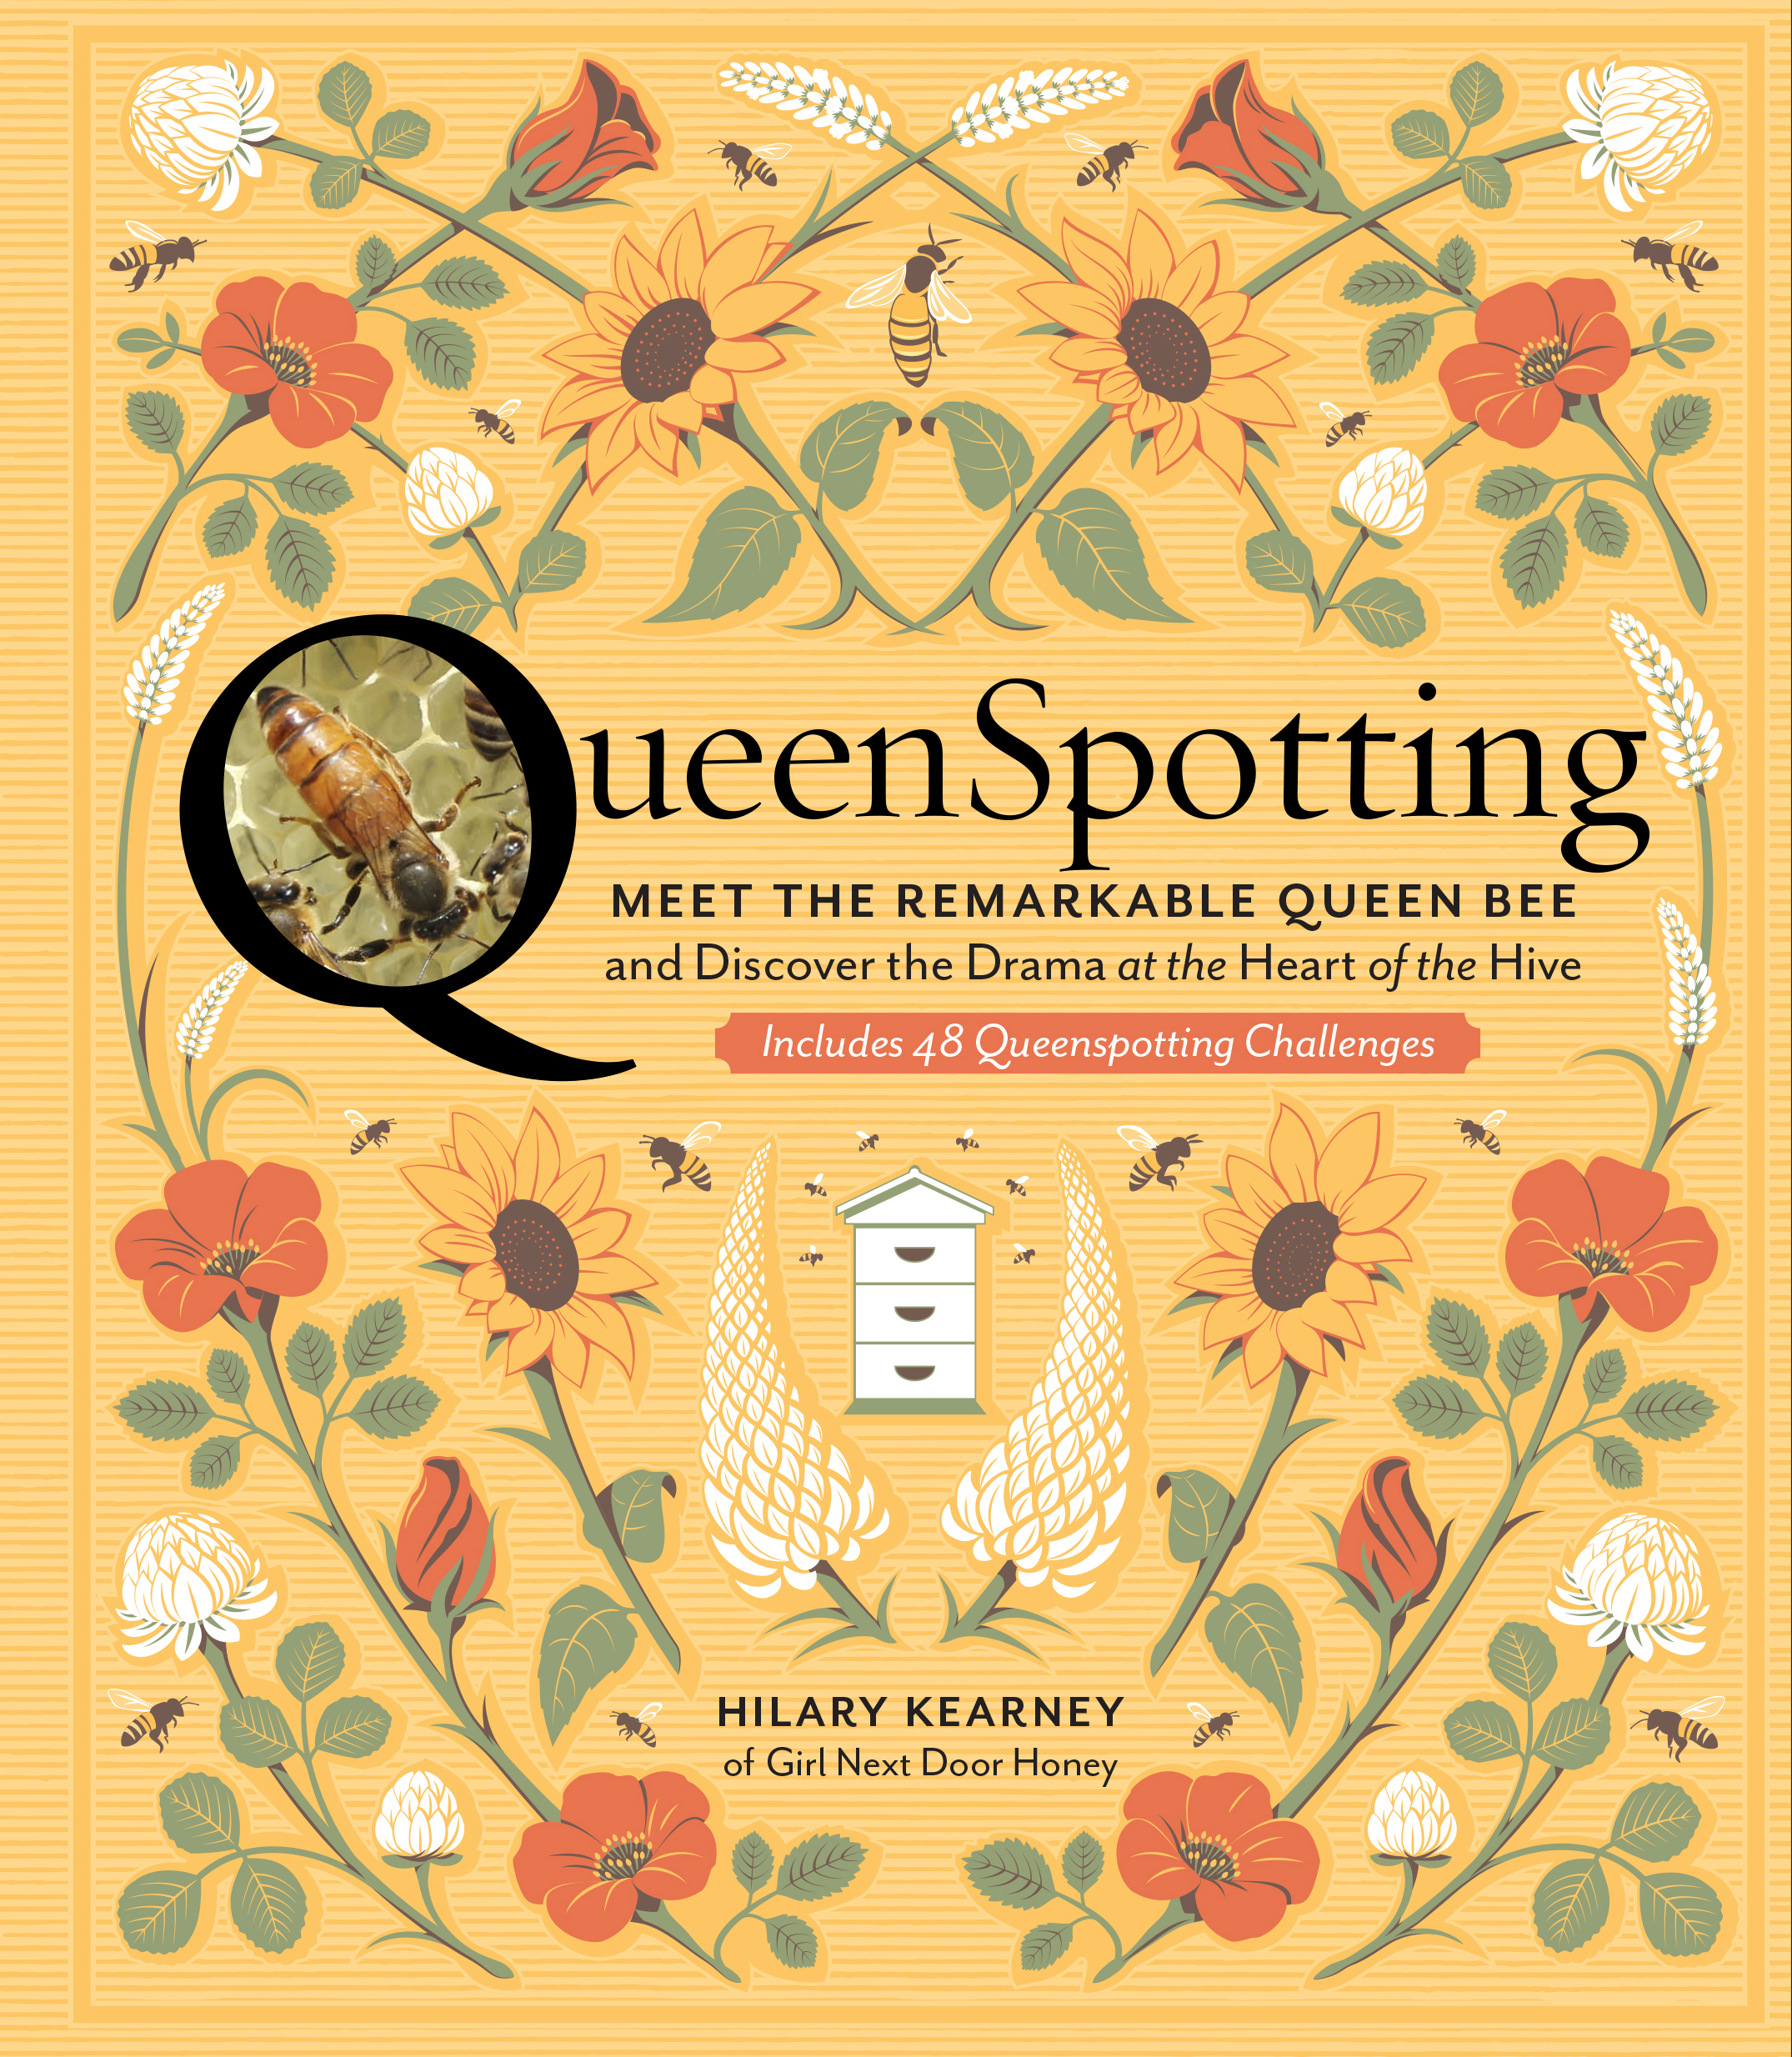 QueenSpotting Meet the Remarkable Queen Bee and Discover the Drama at the Heart of the Hive; Includes 48 Queenspotting Challenges - Hilary Kearney